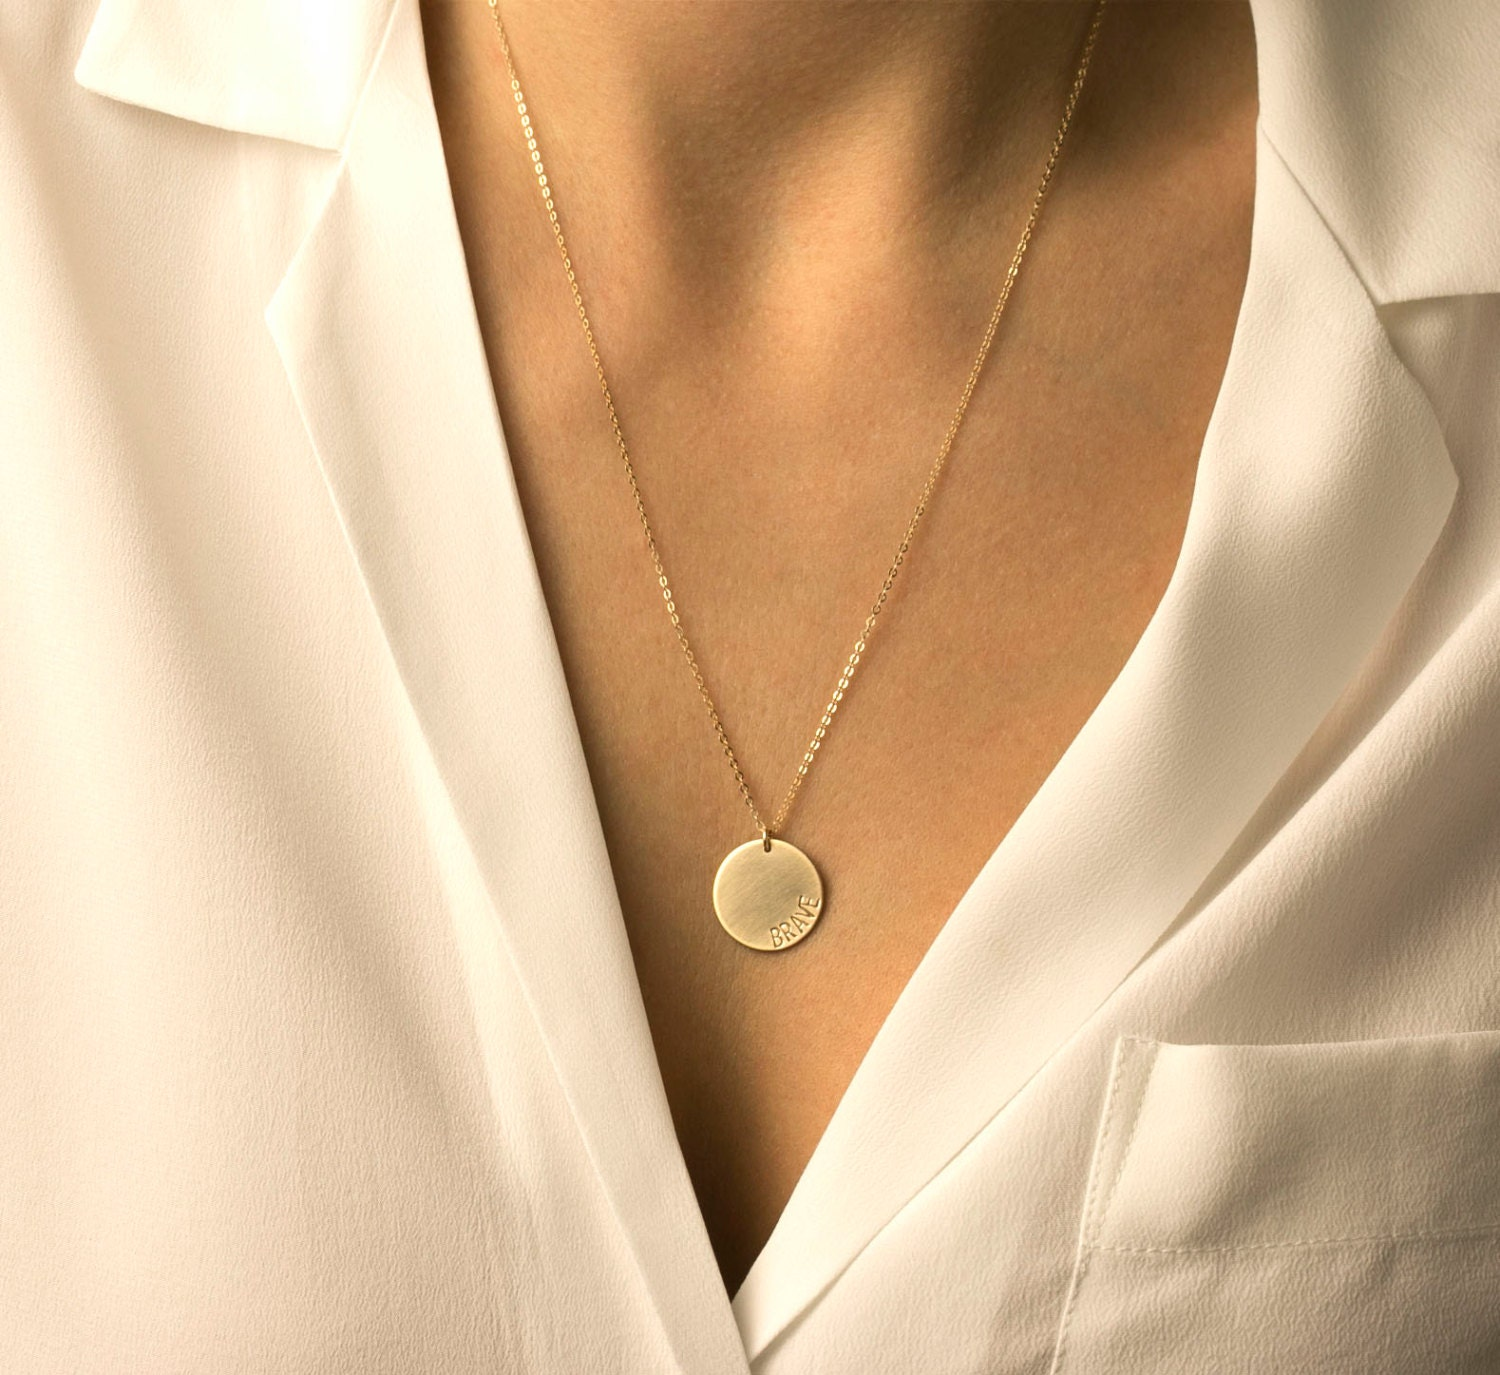 Large Gold Circle Necklace Simple Everyday Disc By